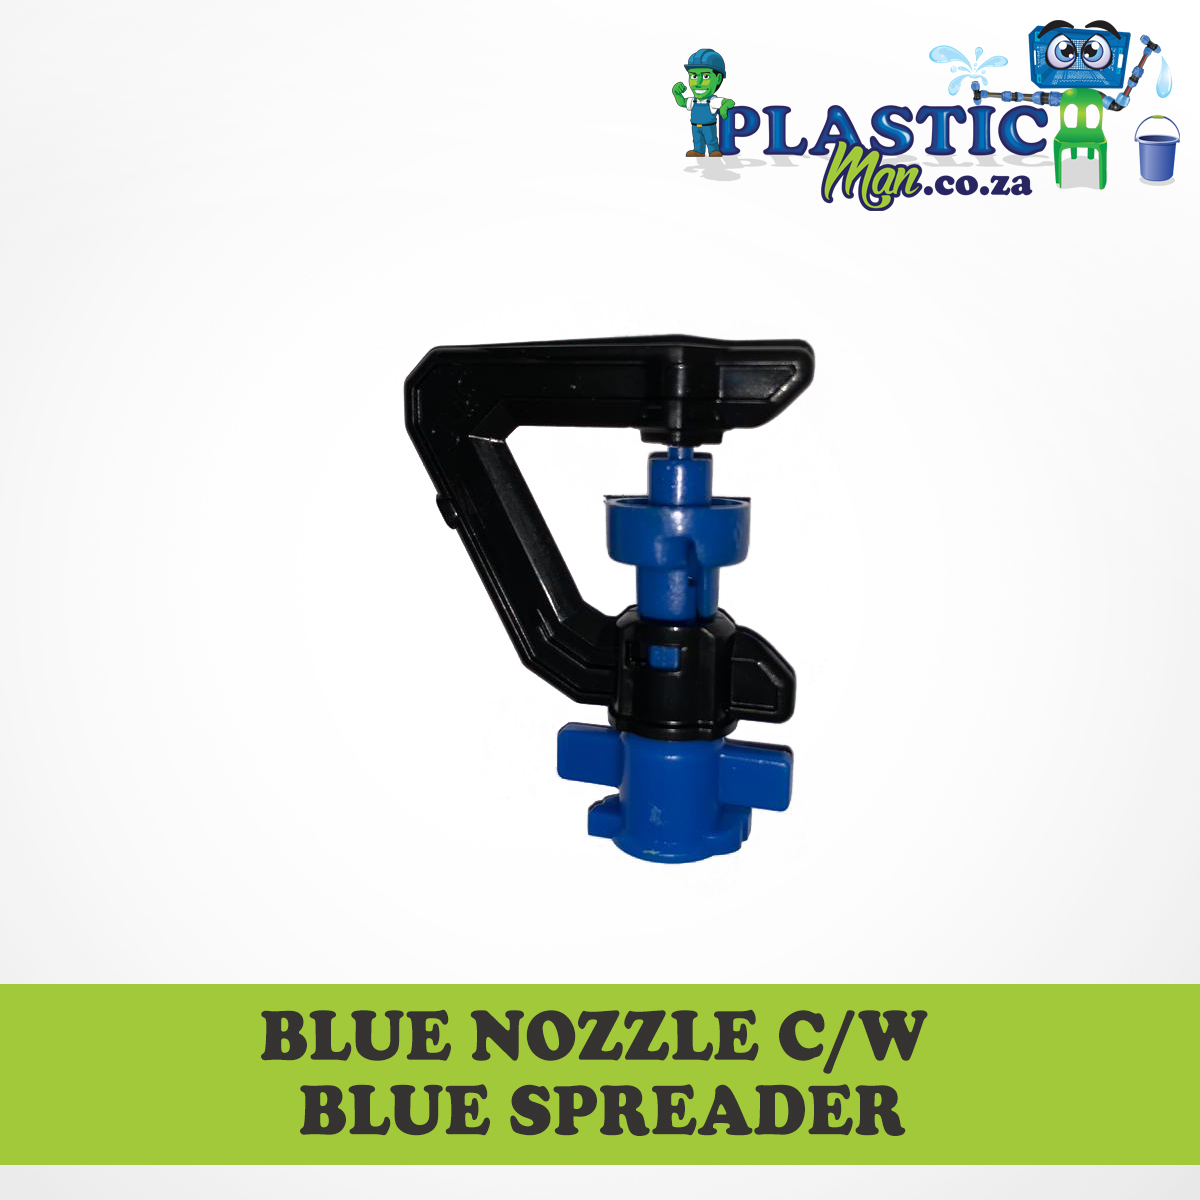 Blue Nozzel c/w Blue Spreader